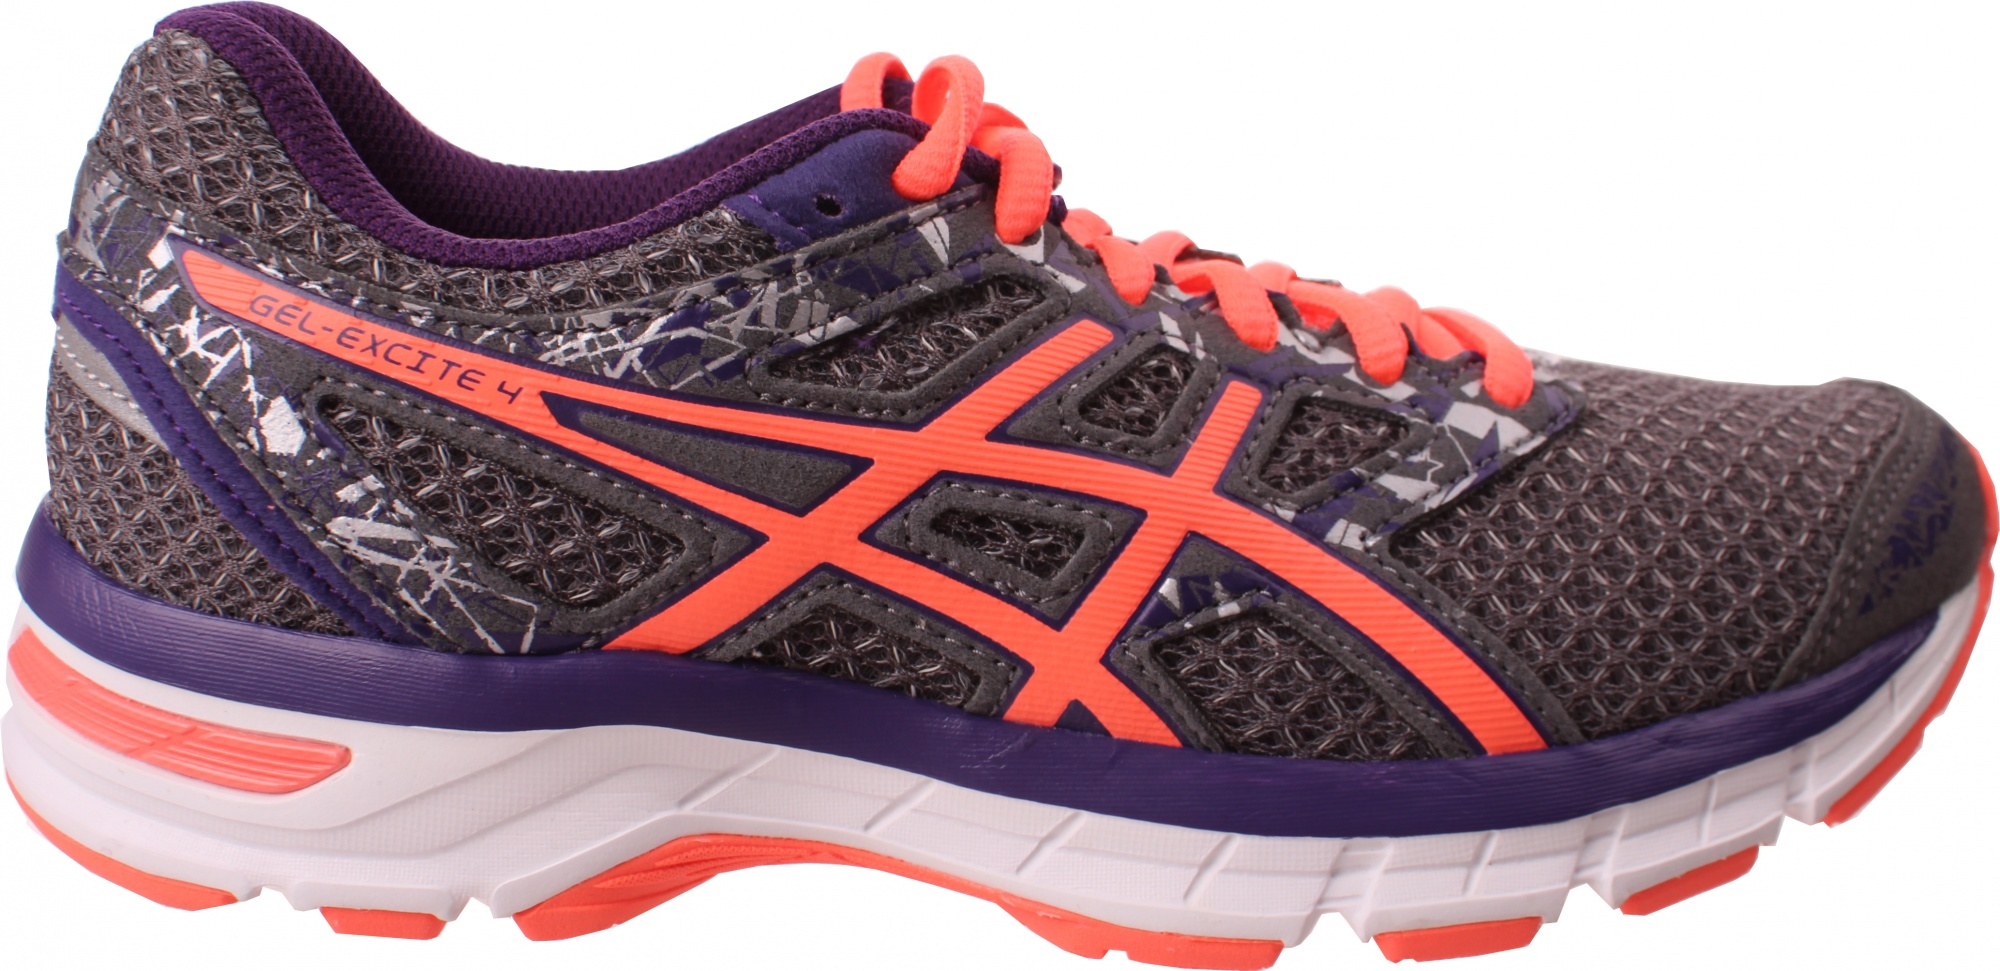 a59daf7a8 ASICS running shoes Gel-Excite 4 women gray - Internet-Sport Casuals